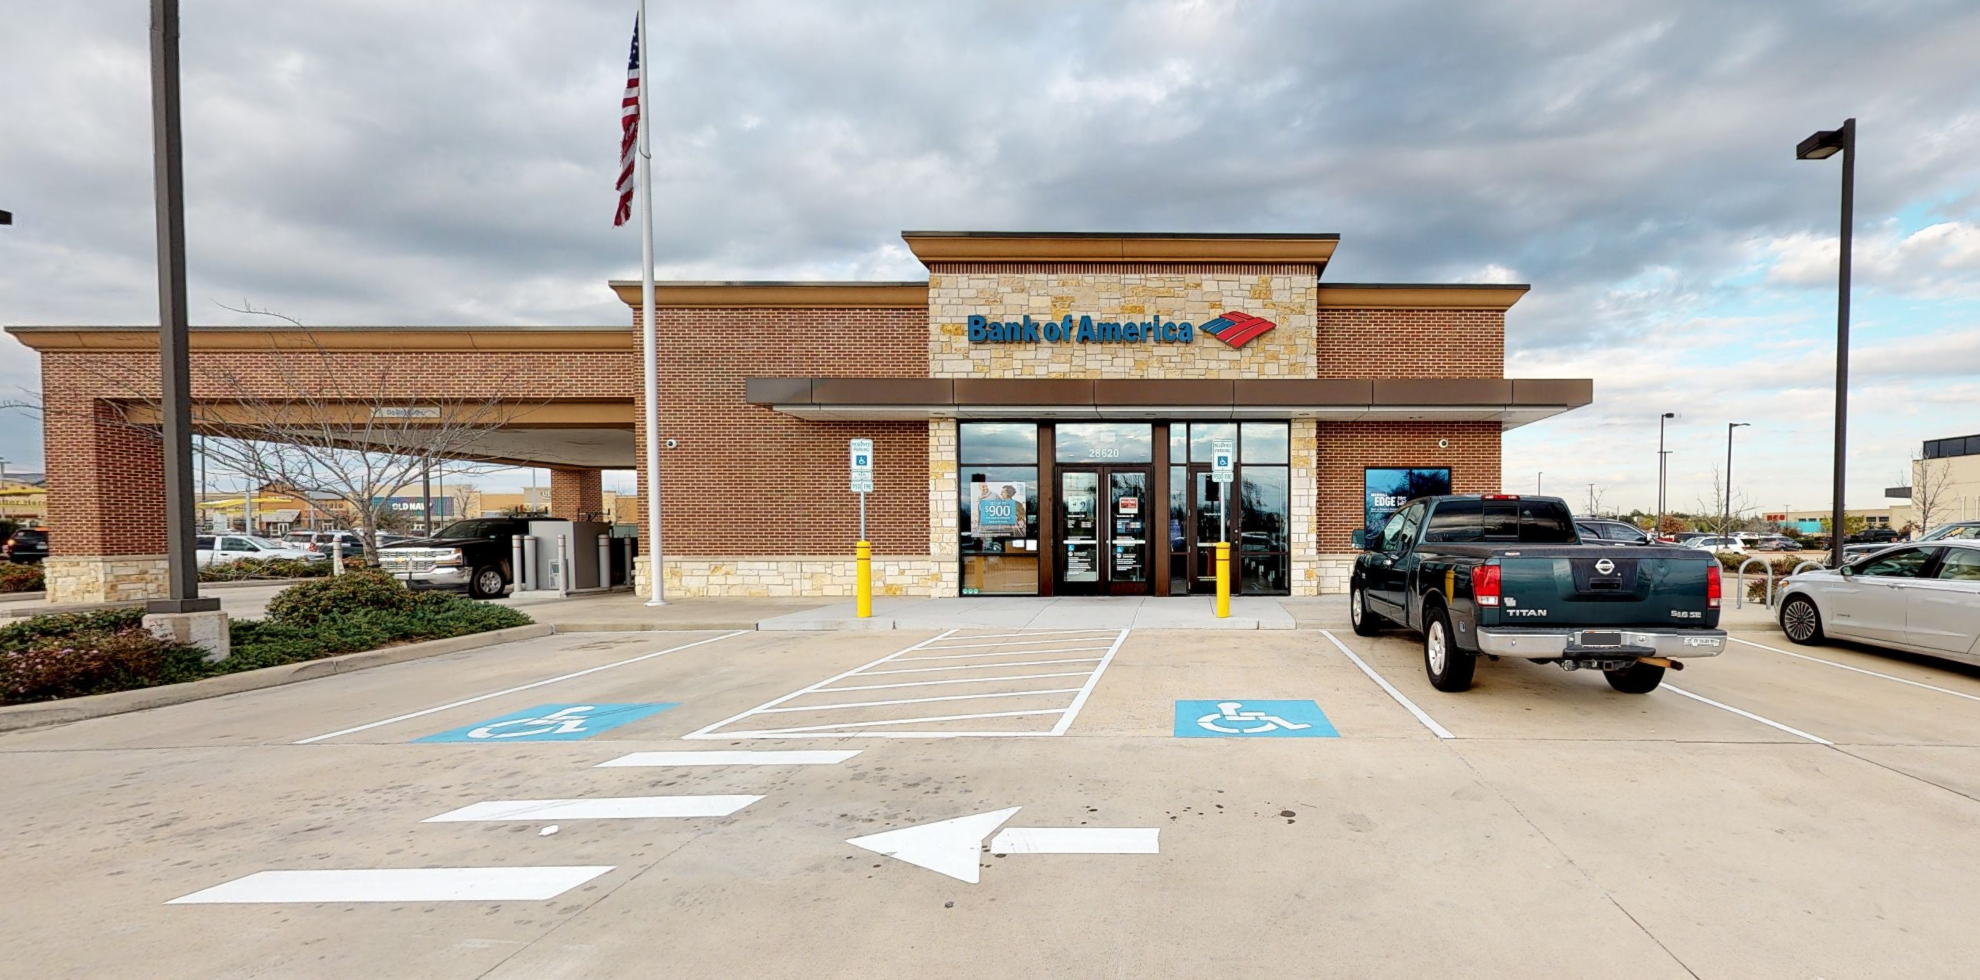 Bank of America financial center with drive-thru ATM | 28620 Highway 290, Cypress, TX 77433